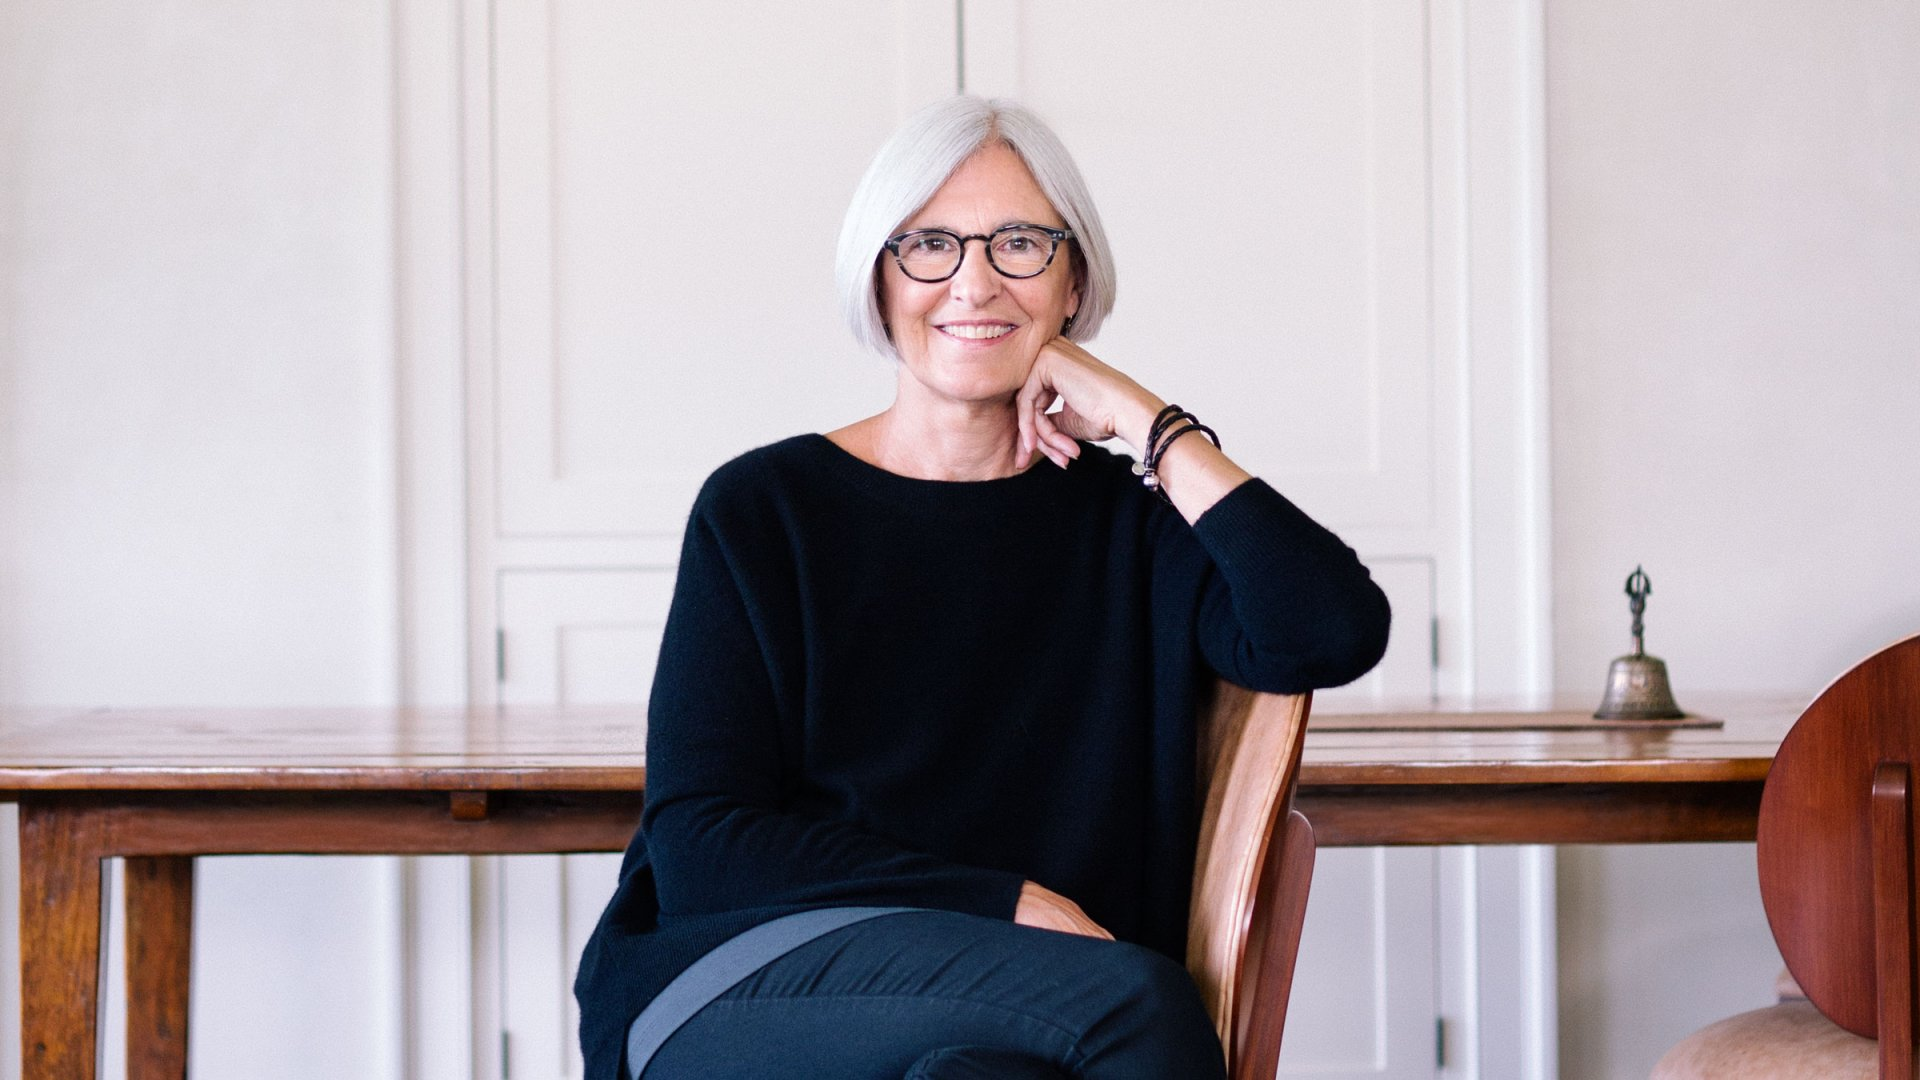 Eileen Fisher: How I Focus on What Really Matters